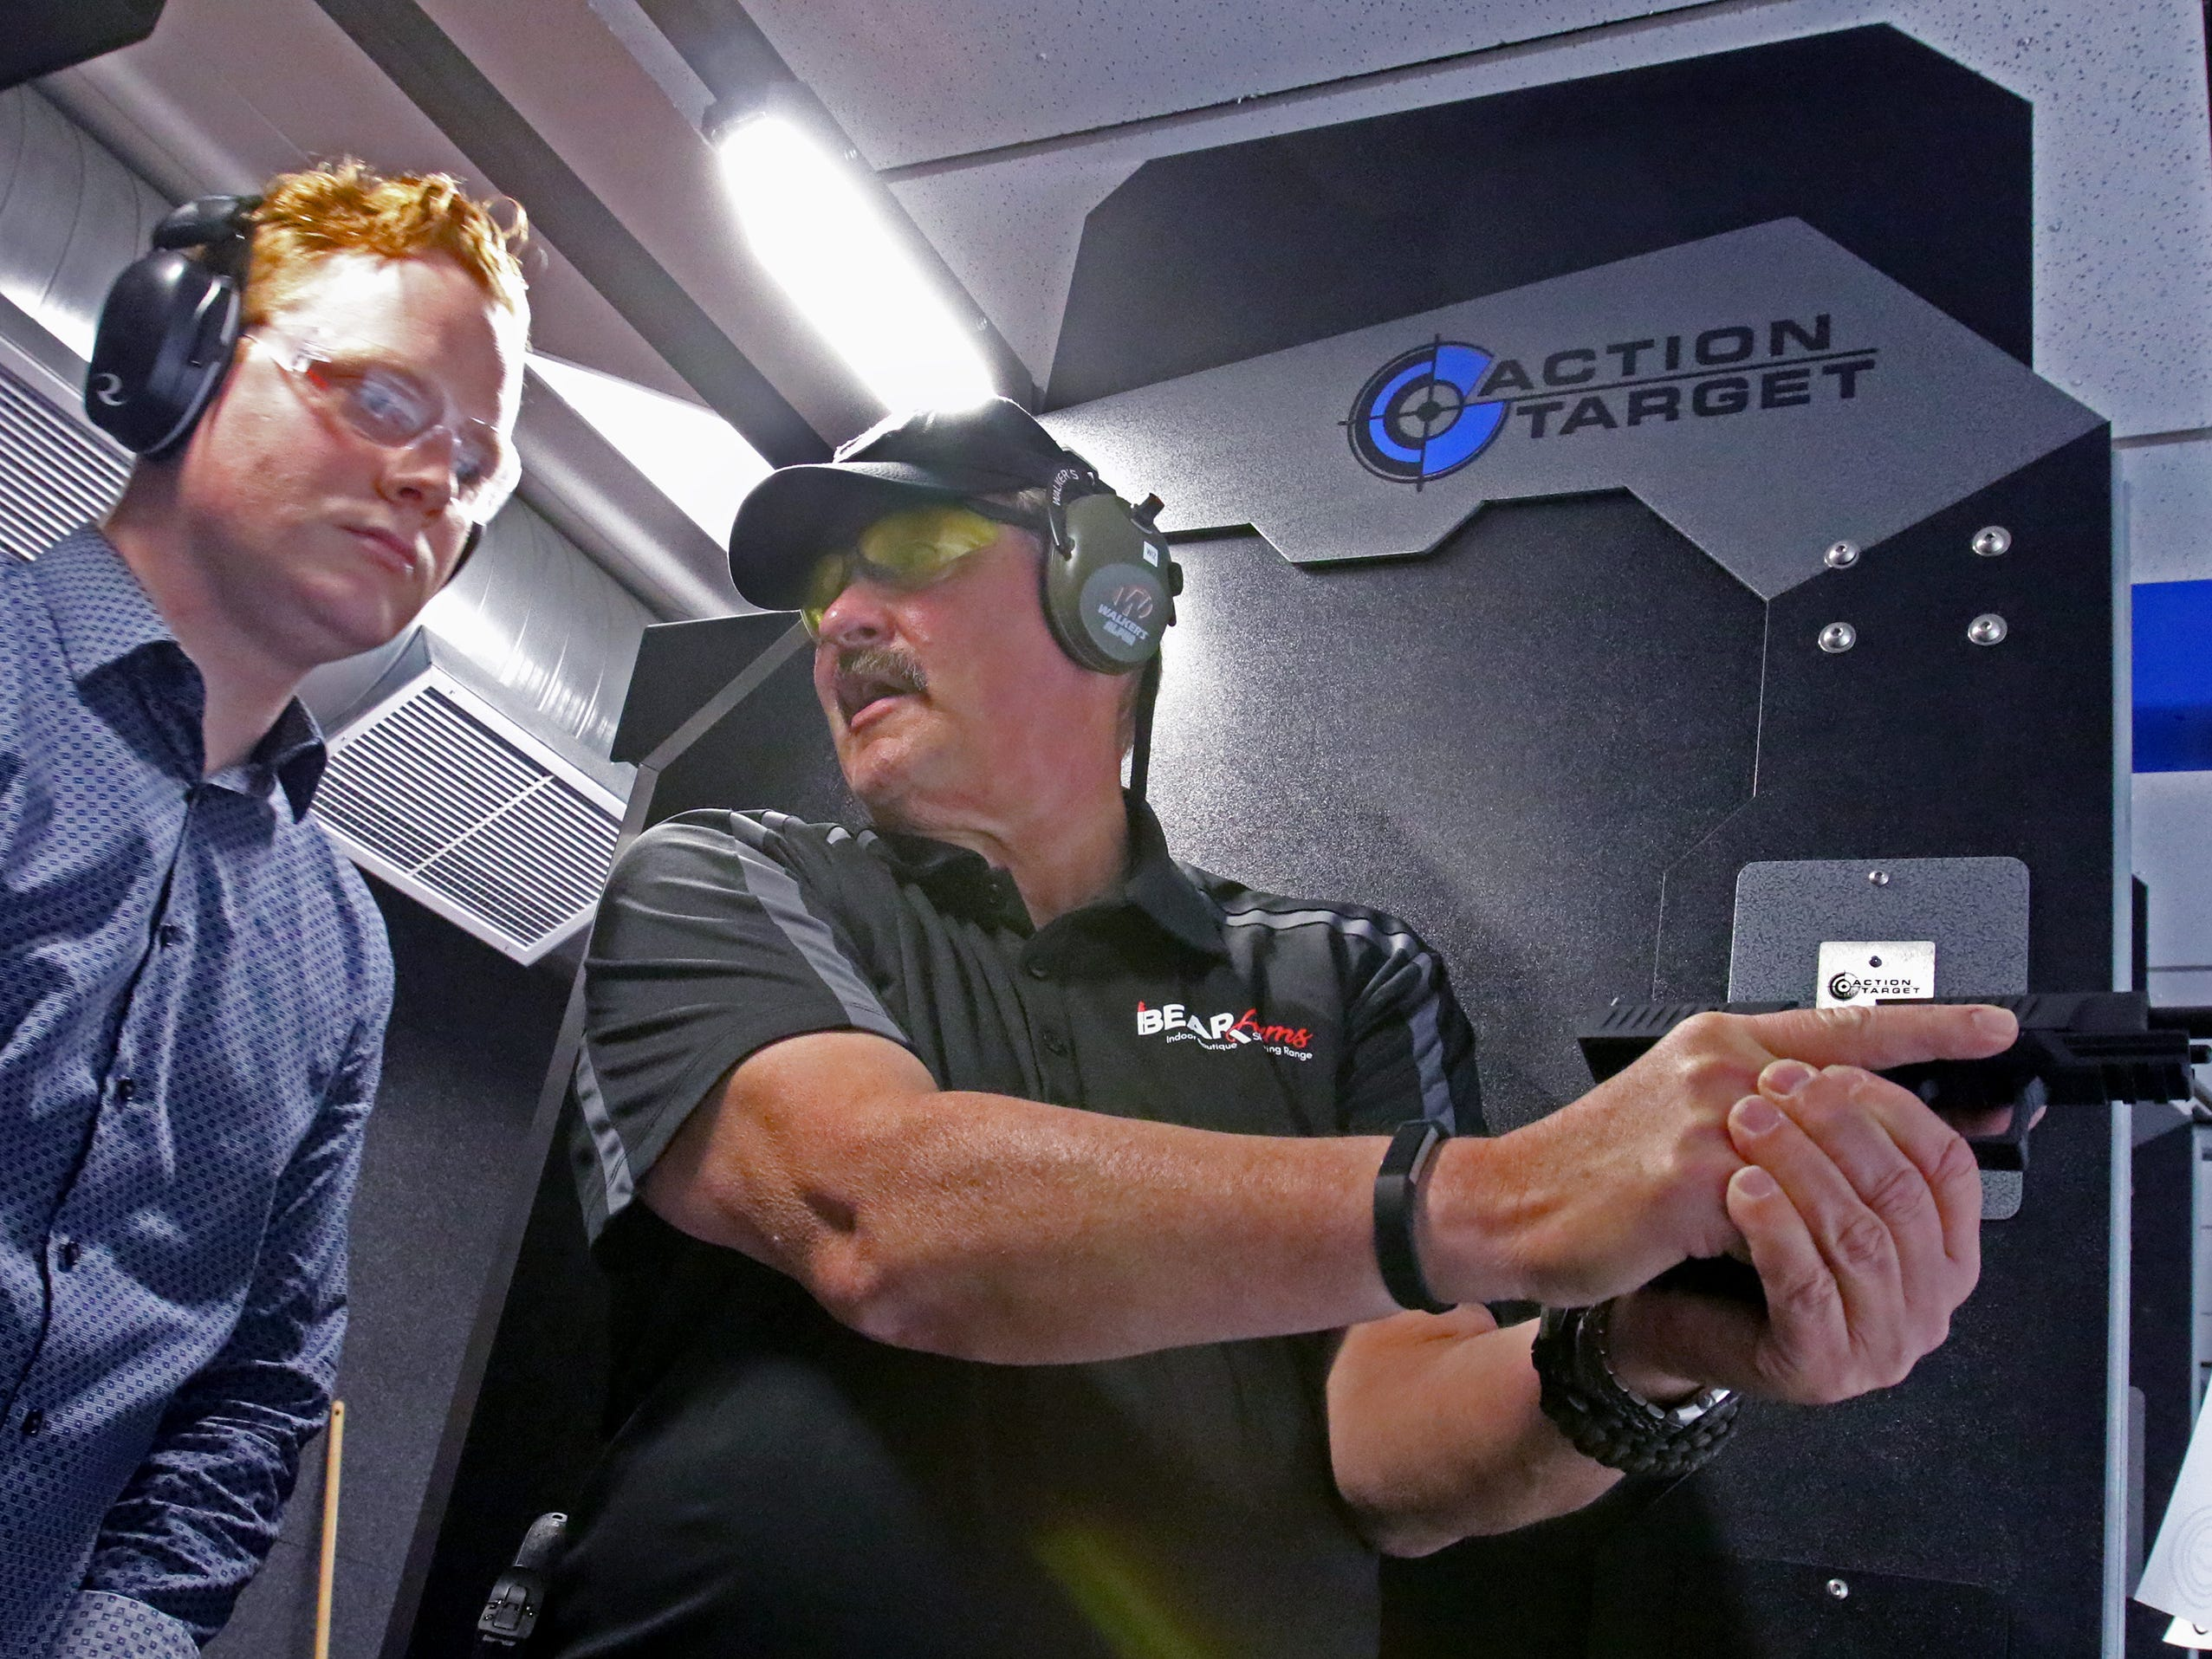 Mark Wierzbinski, a NRA certified firearms instructor, teaches Jeff Rummage, a NOW reporter, on the proper way to handle and discharge a semi-automatic handgun in one of the Bear Arms eight firing range lanes on Oct. 11.